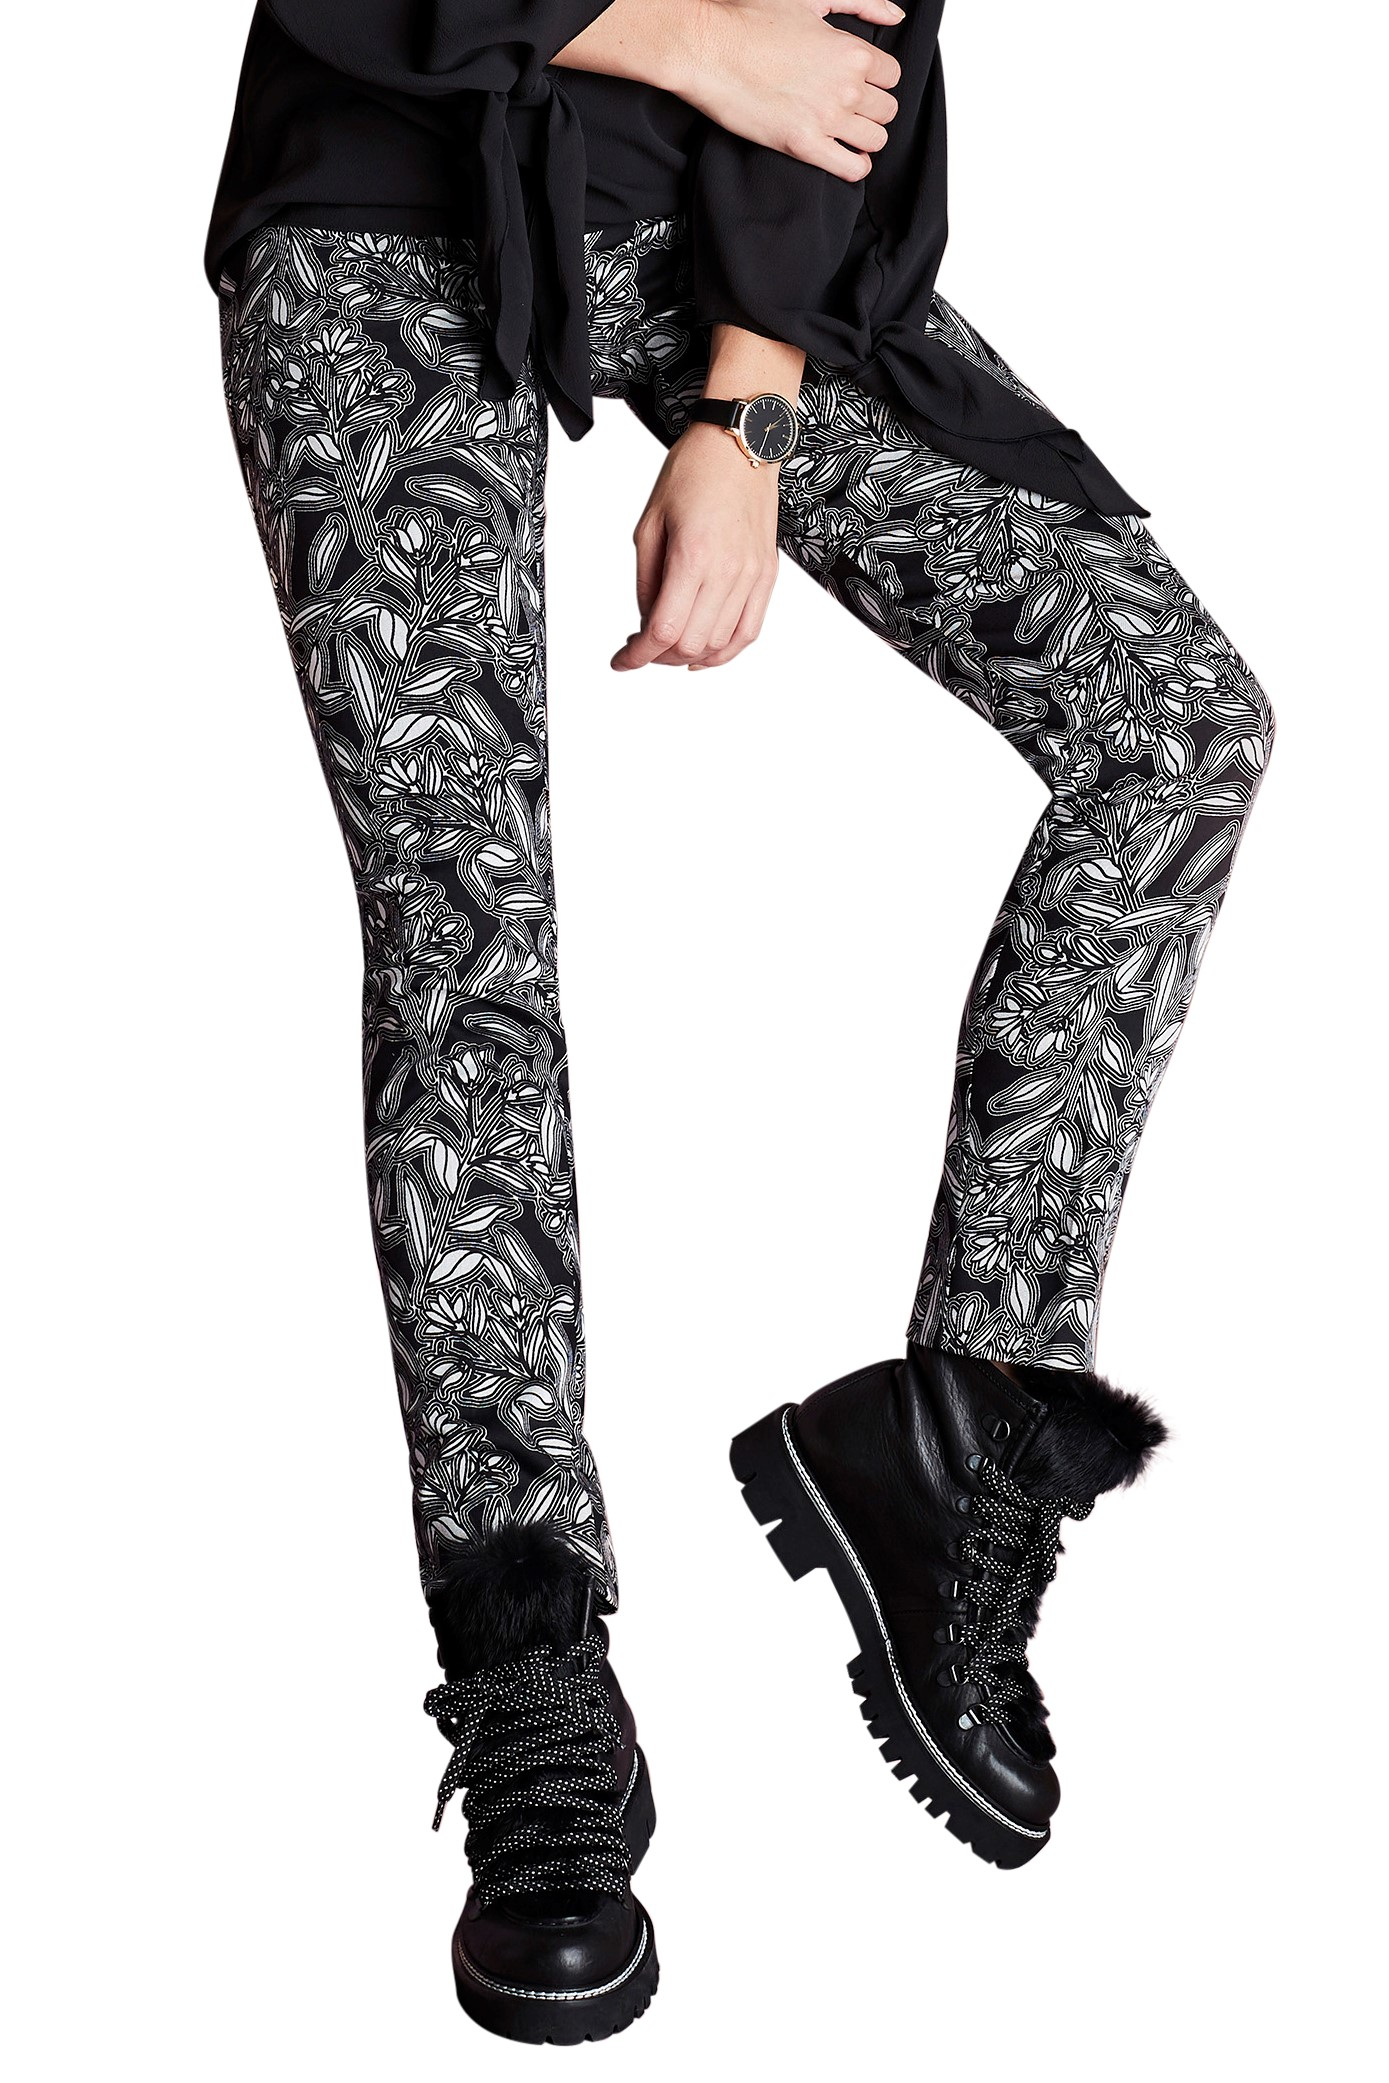 f7c79aaa632fc6 Home > LISETTE L MONTREAL > Lisette L Slim Ankle Pants > Lisette L. Slim  Ankle Pant Style 40701 Trinity Floral Print CP Twill Color Black-White